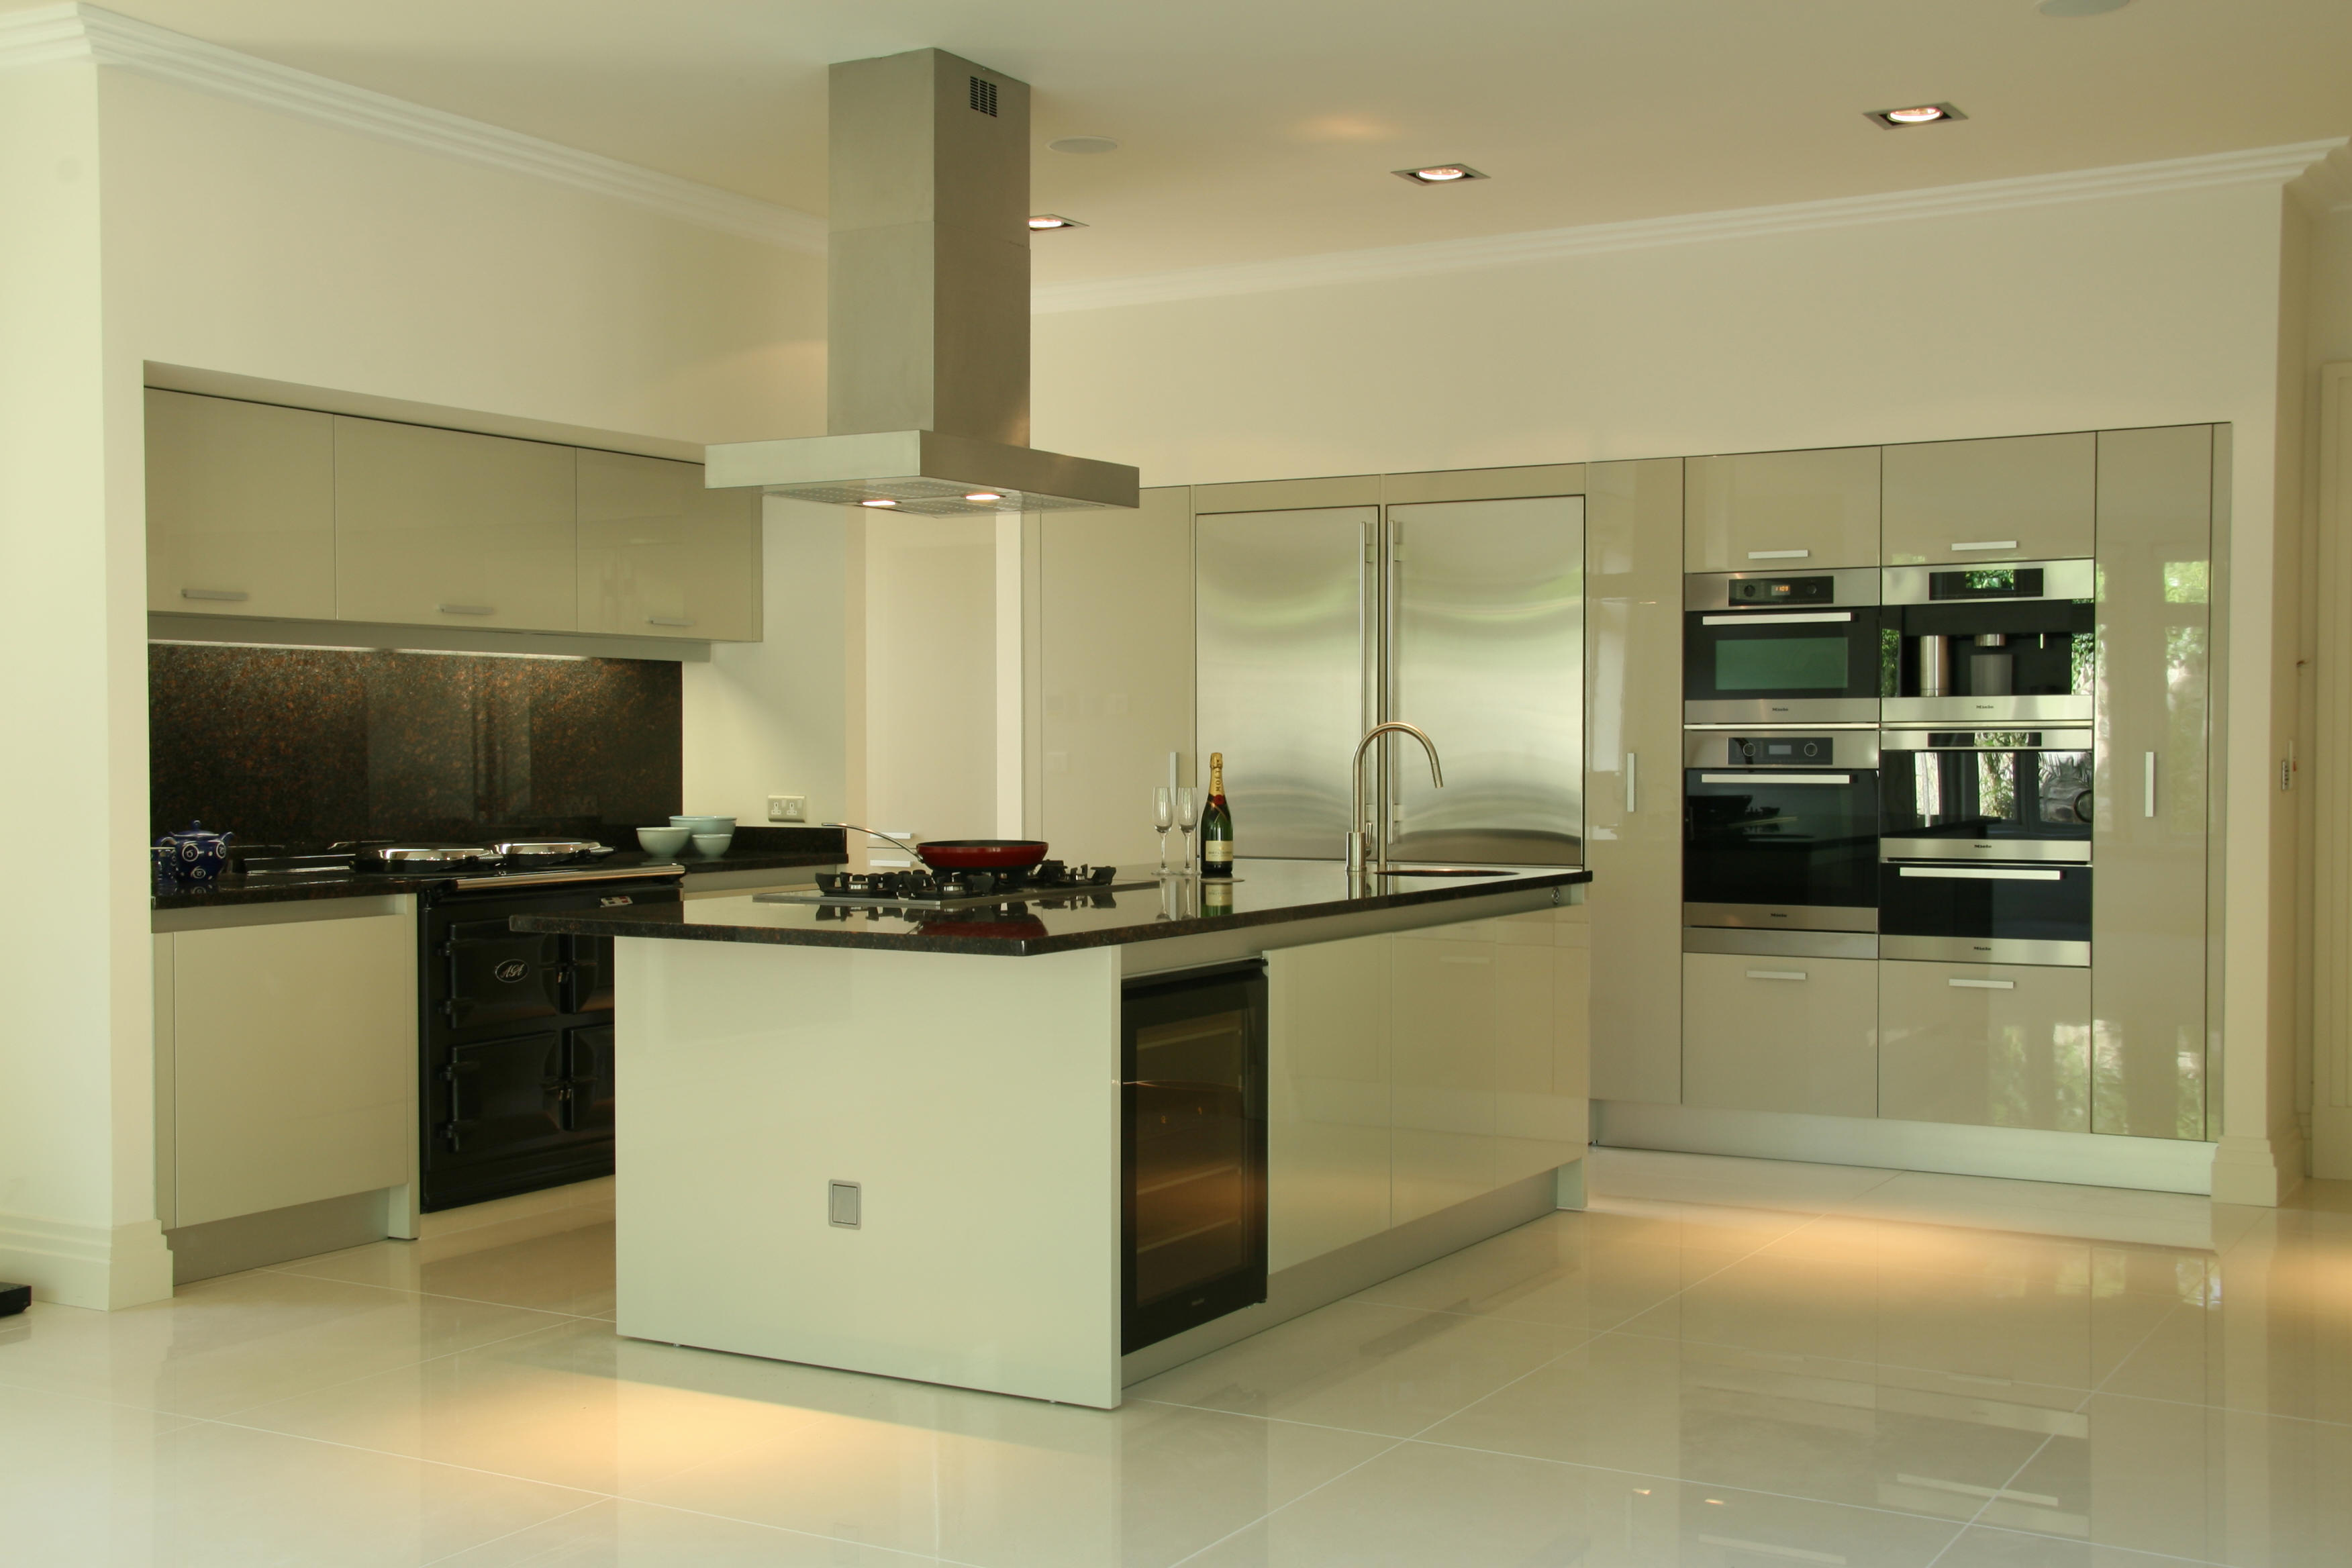 Residential foxrock dublin aurora aleson interior for Apartment kitchen design dublin